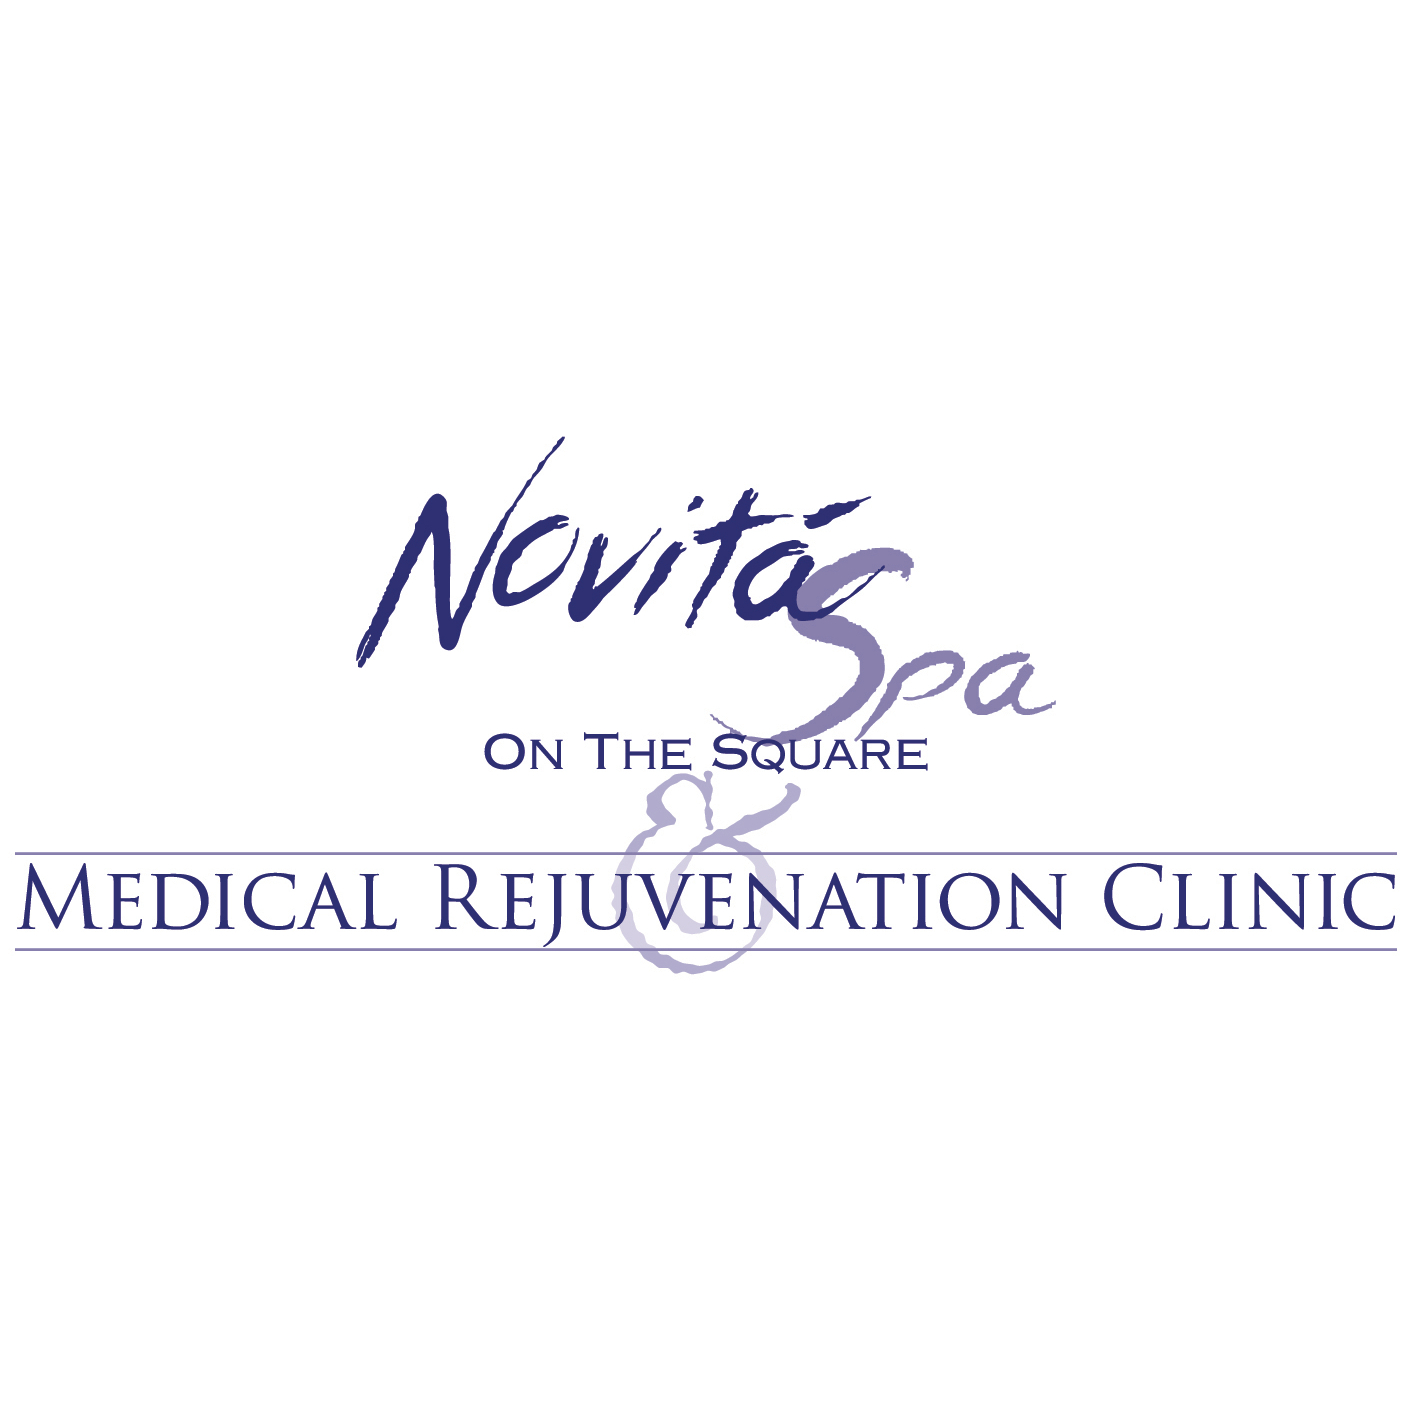 Novita Spa On The Square Medical Rejuvenation Clinic